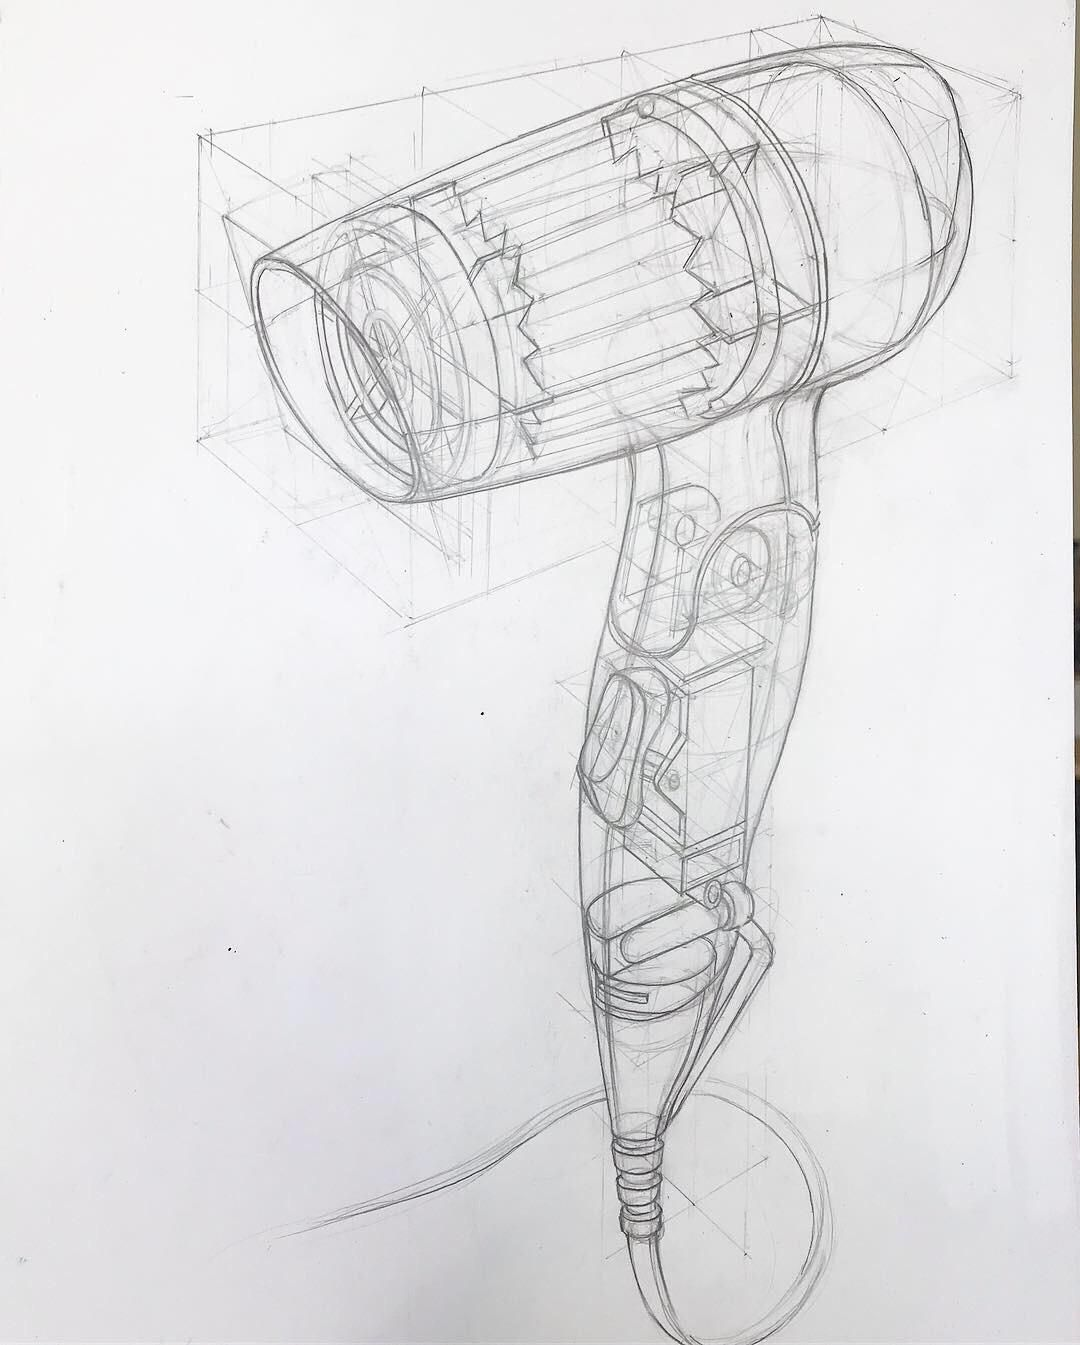 Technical Sketch Of A Hairdryer Drawing Industrial Design Sketch Drawings Conceptual Sketches